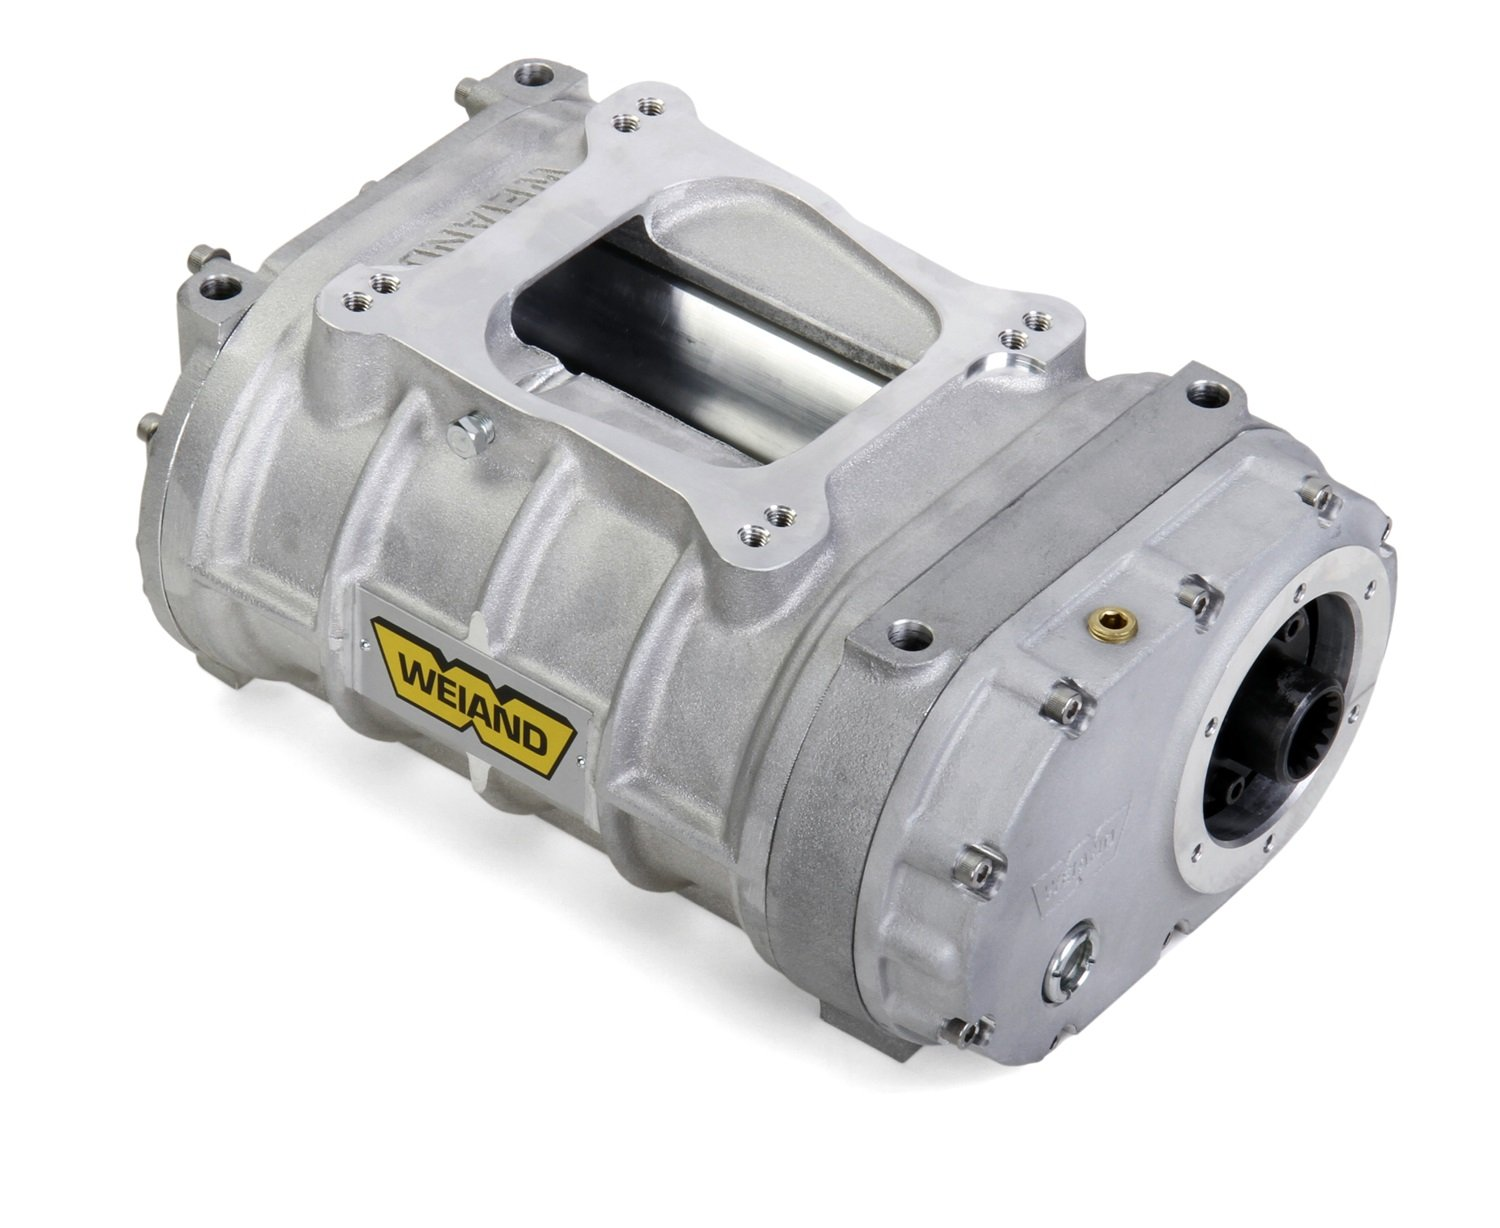 Weiand 6010-1 Pro-Street Supercharger Small Block Satin Case Assembly